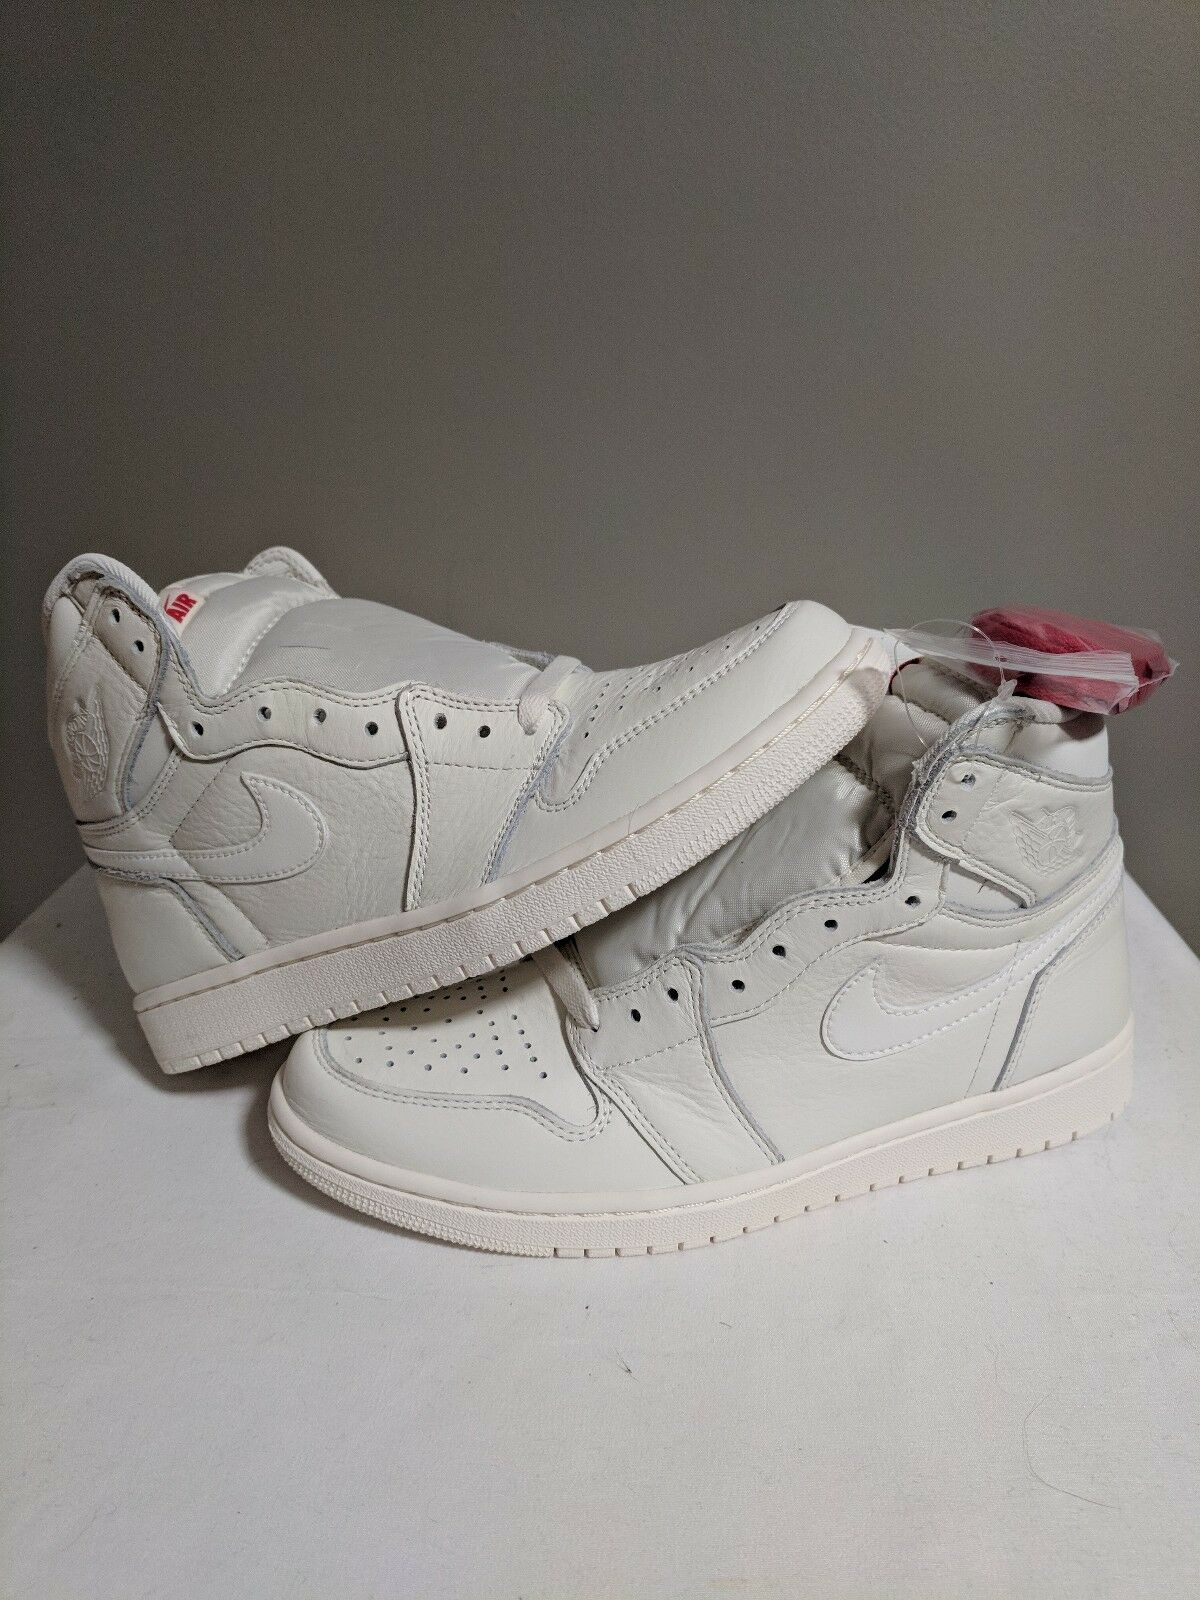 NIKE AIR JORDAN 1 RETRO HIGH OG SAIL UNIVERSITY RED white bone 555088 114 sz 8.5